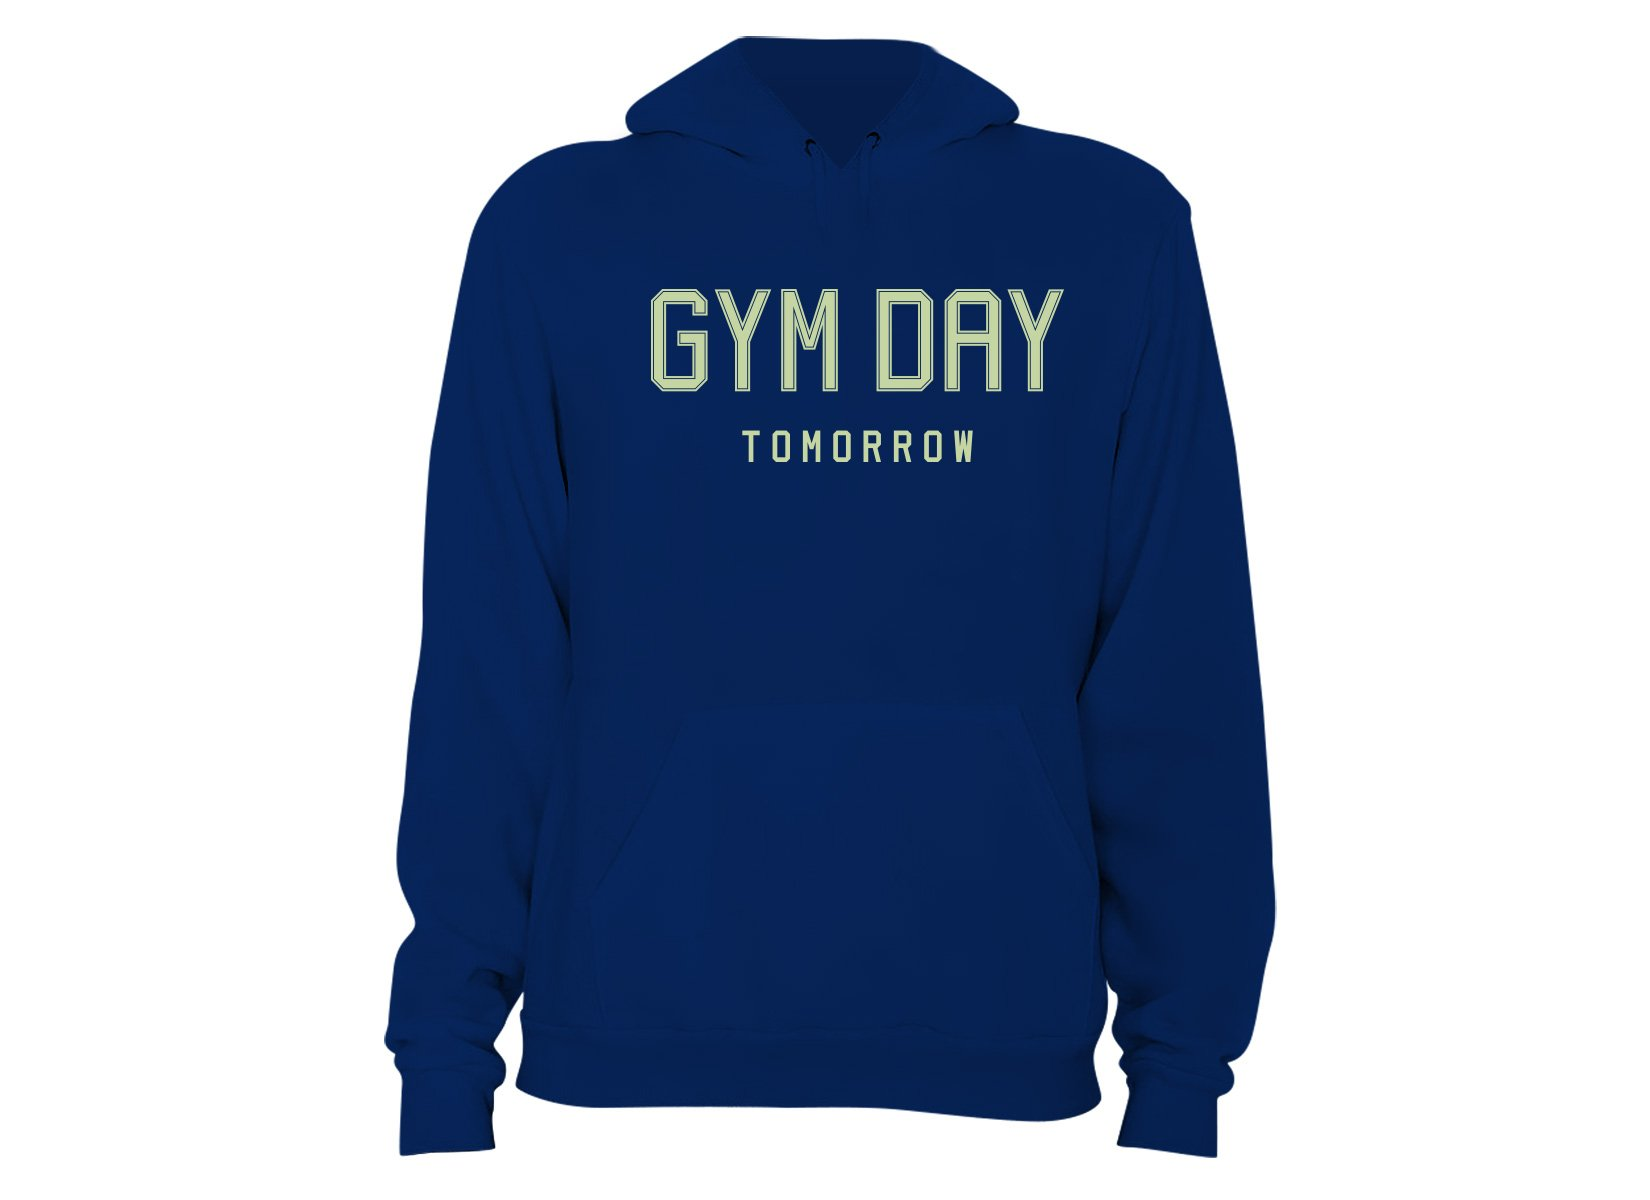 Gym Day Tomorrow on Hoodie